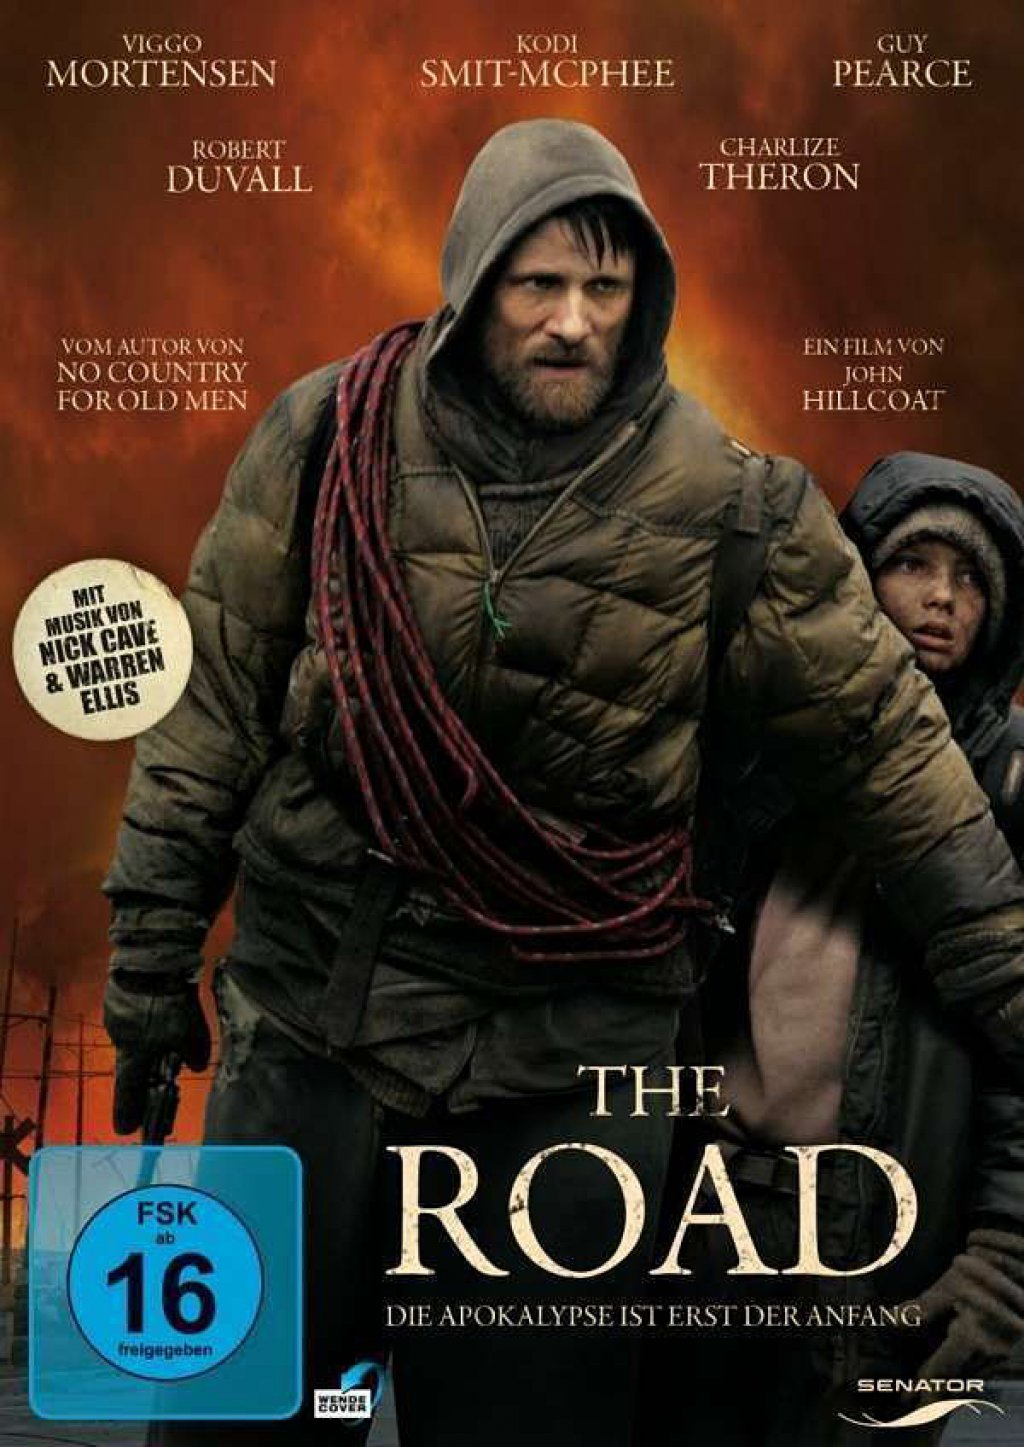 The Road - 2. Auflage (DVD)